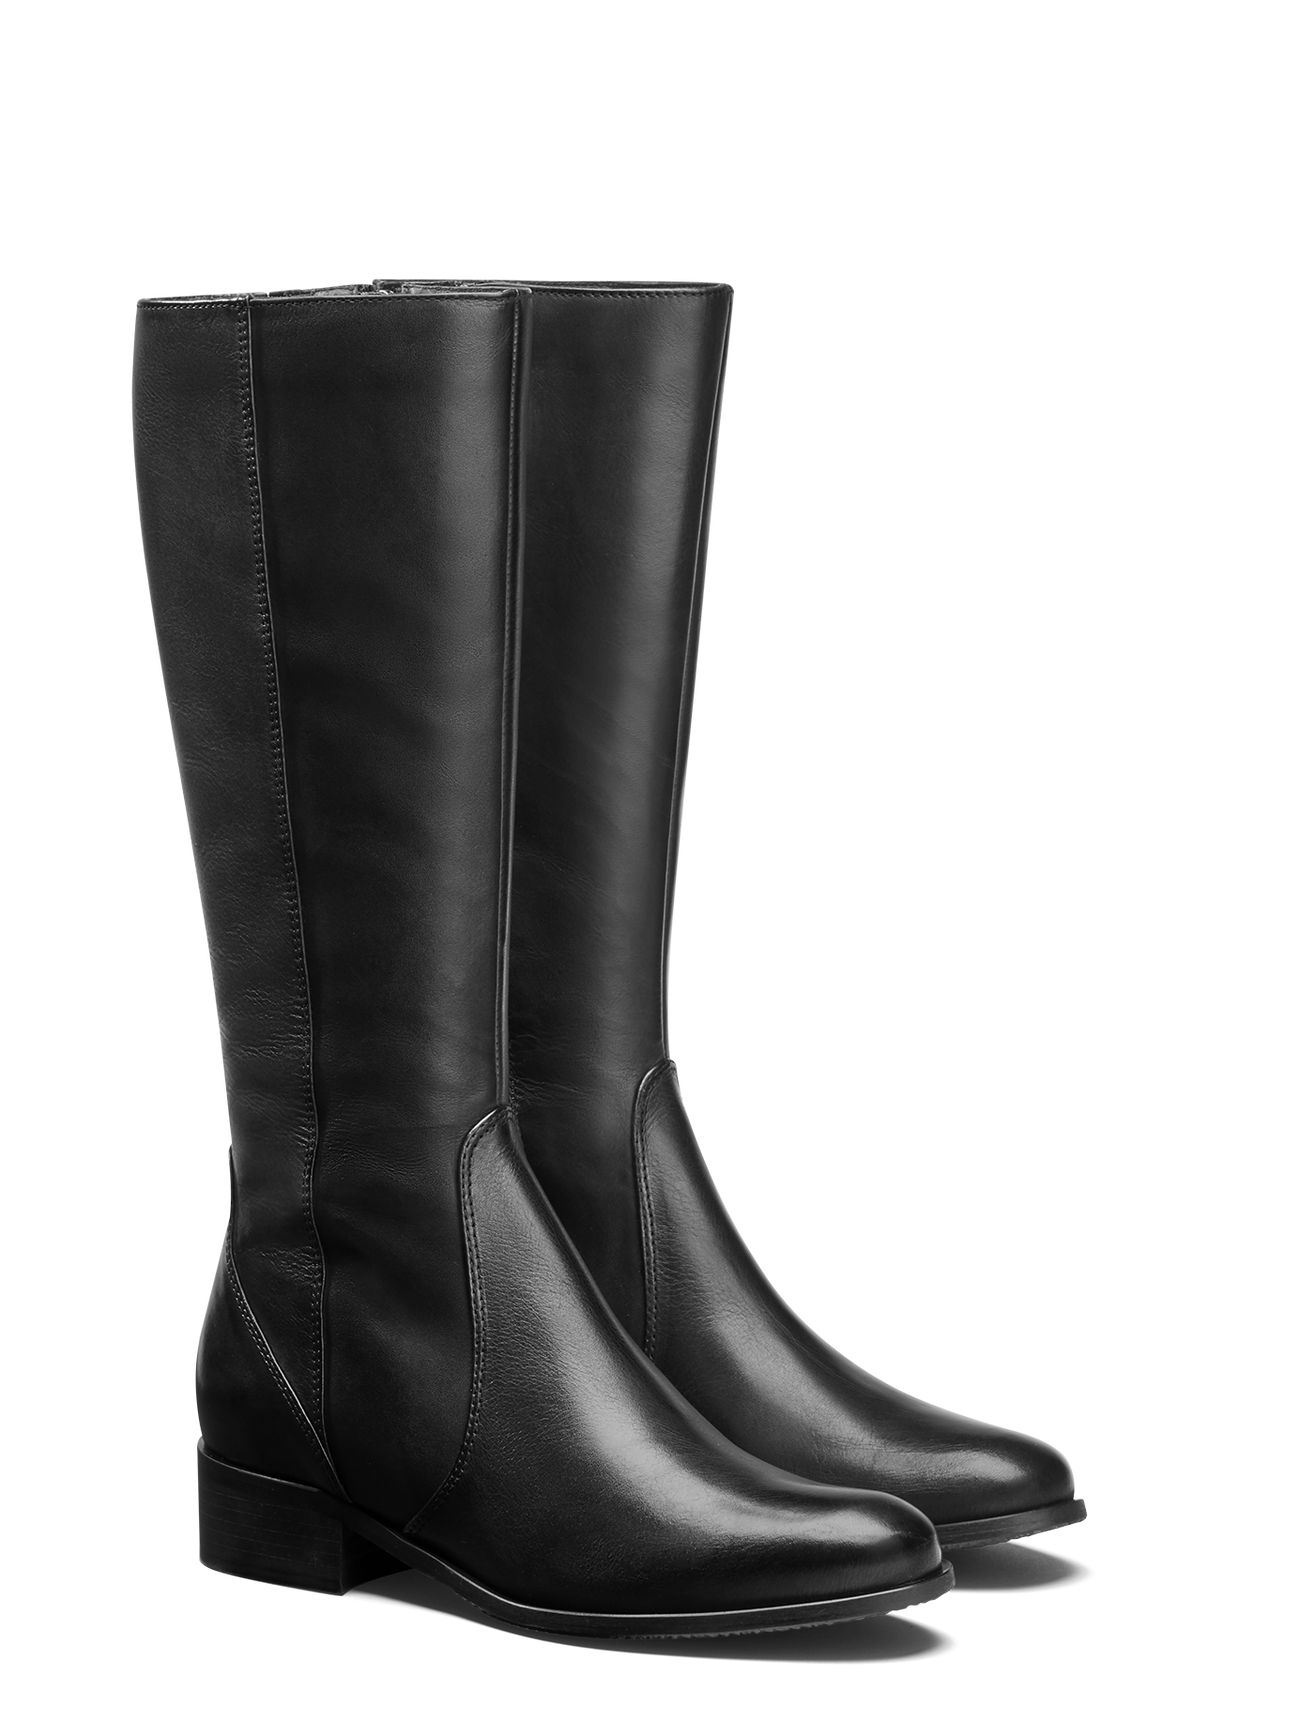 Haltham, a classic design riding style boot in black leather with a slim ankle.